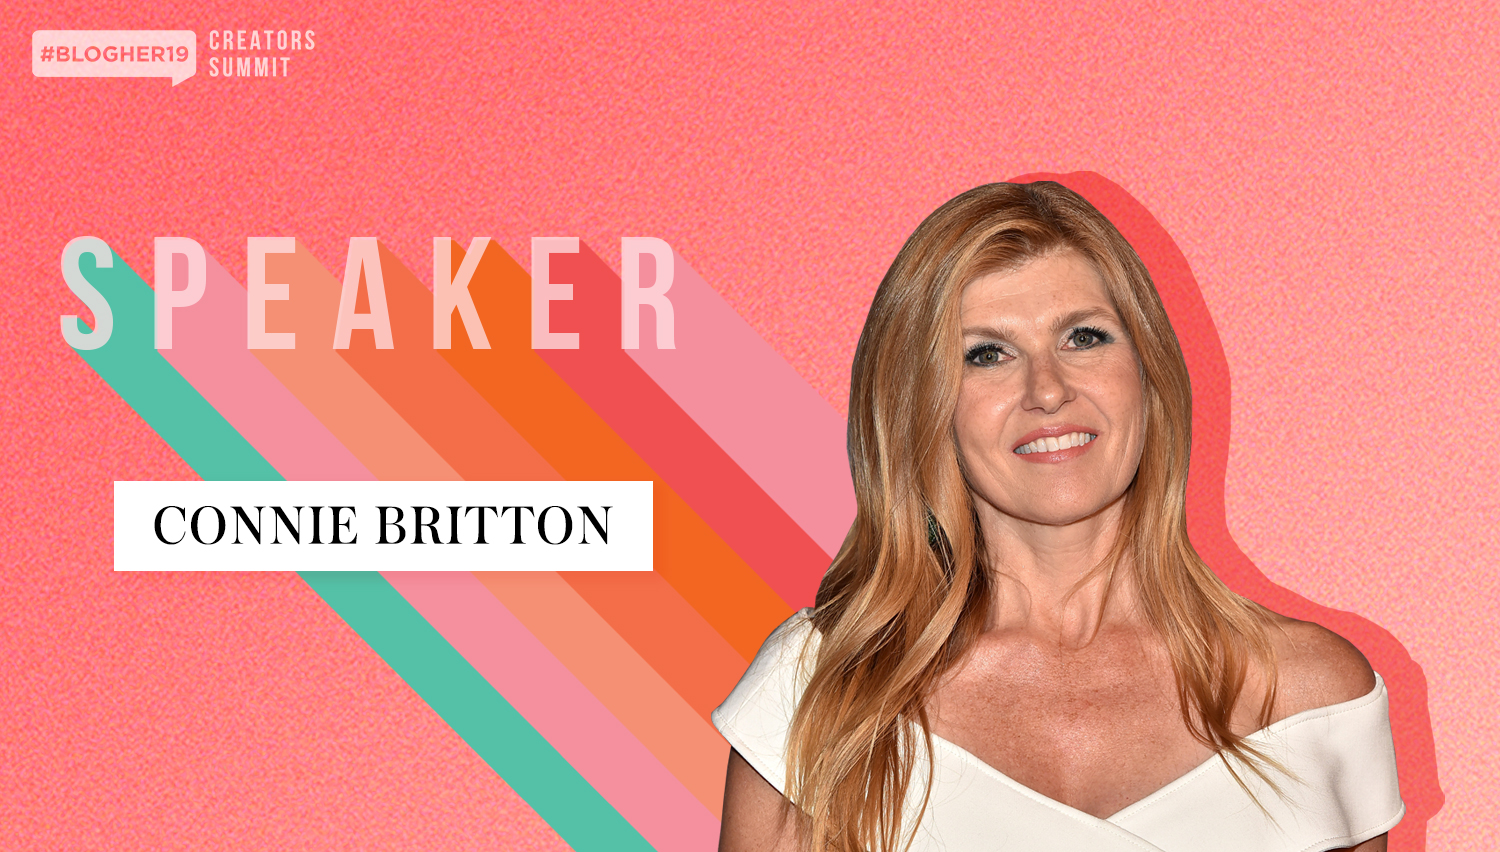 Connie Britton joins #BlogHer19 Creators Summit - The Actress, Producer and Advocate is the latest talent to join the #BlogHer19 Creators Summit speaker roster. She will kick-off the programming on Day 1 with an interview and introduce the Voices of the Year Awards.